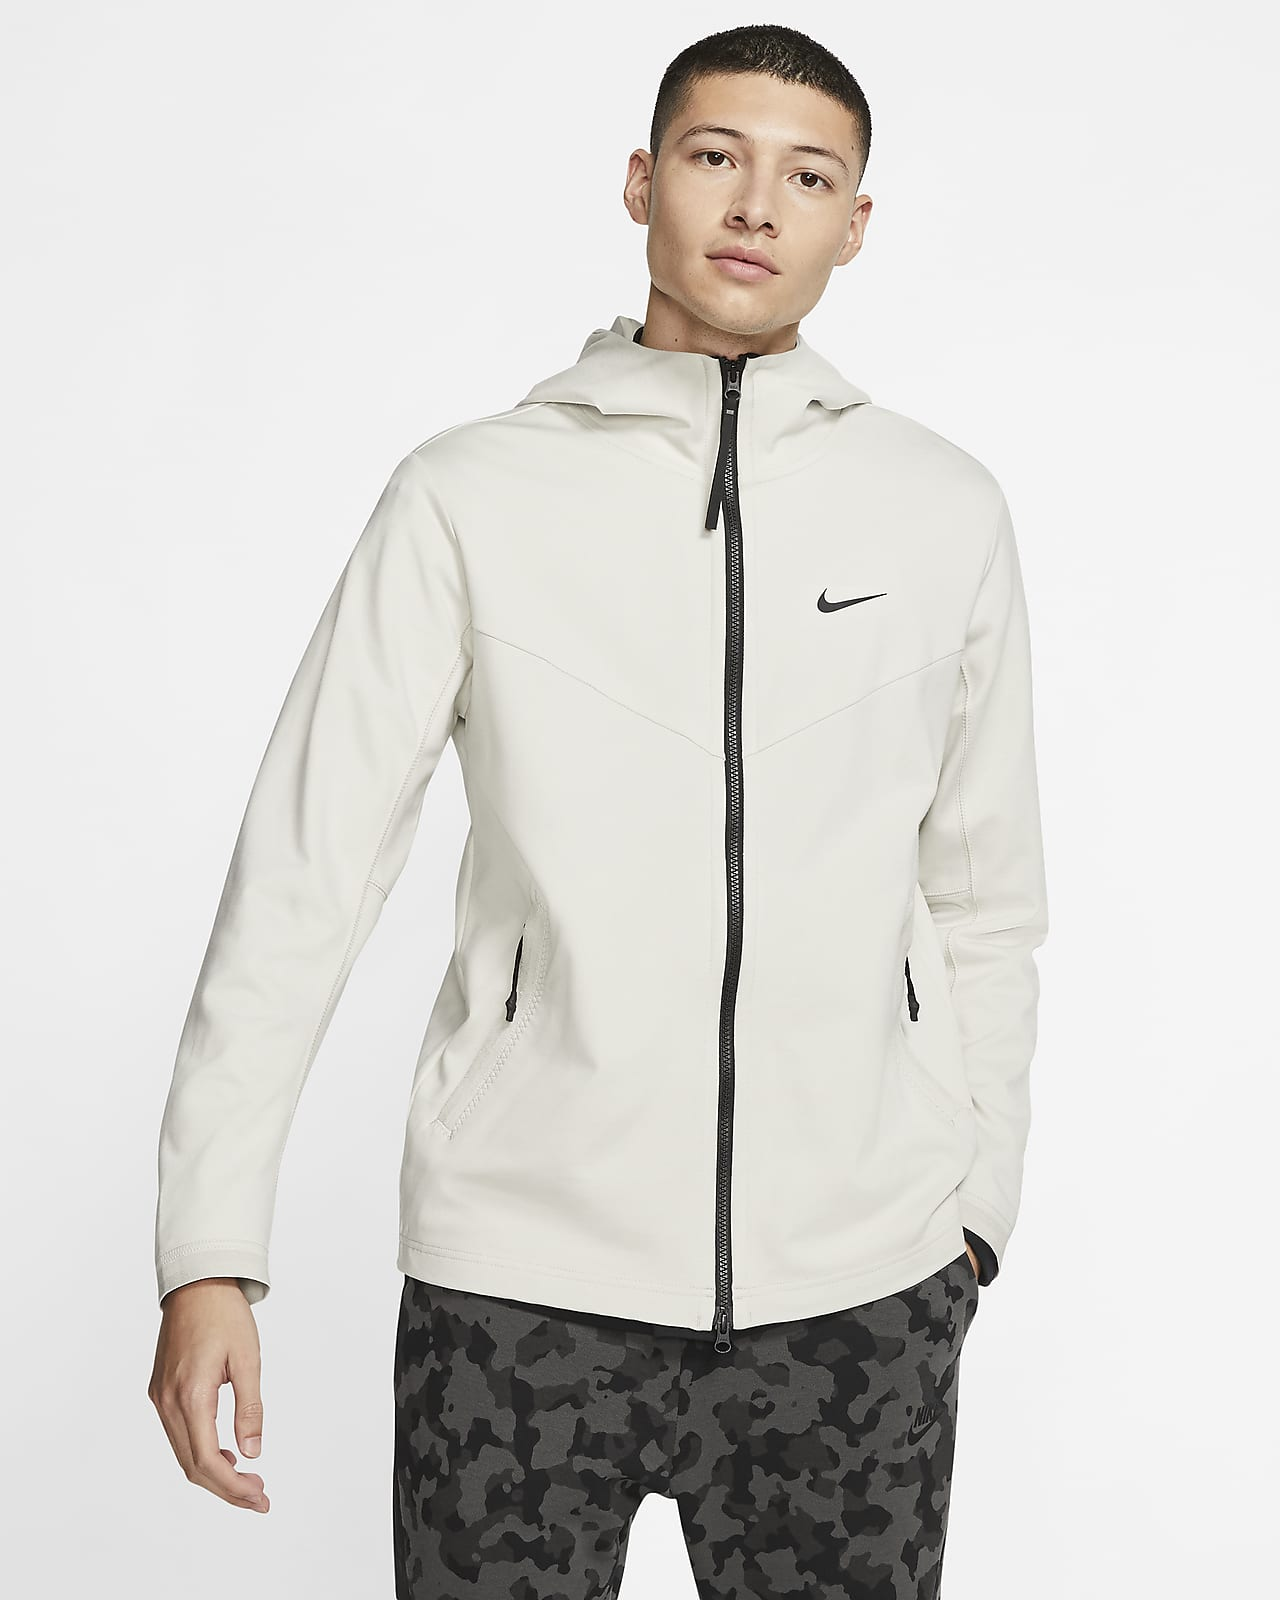 hormigón escucho música Cosquillas  Nike Sportswear Tech Pack Men's Hooded Full-Zip Jacket. Nike SA